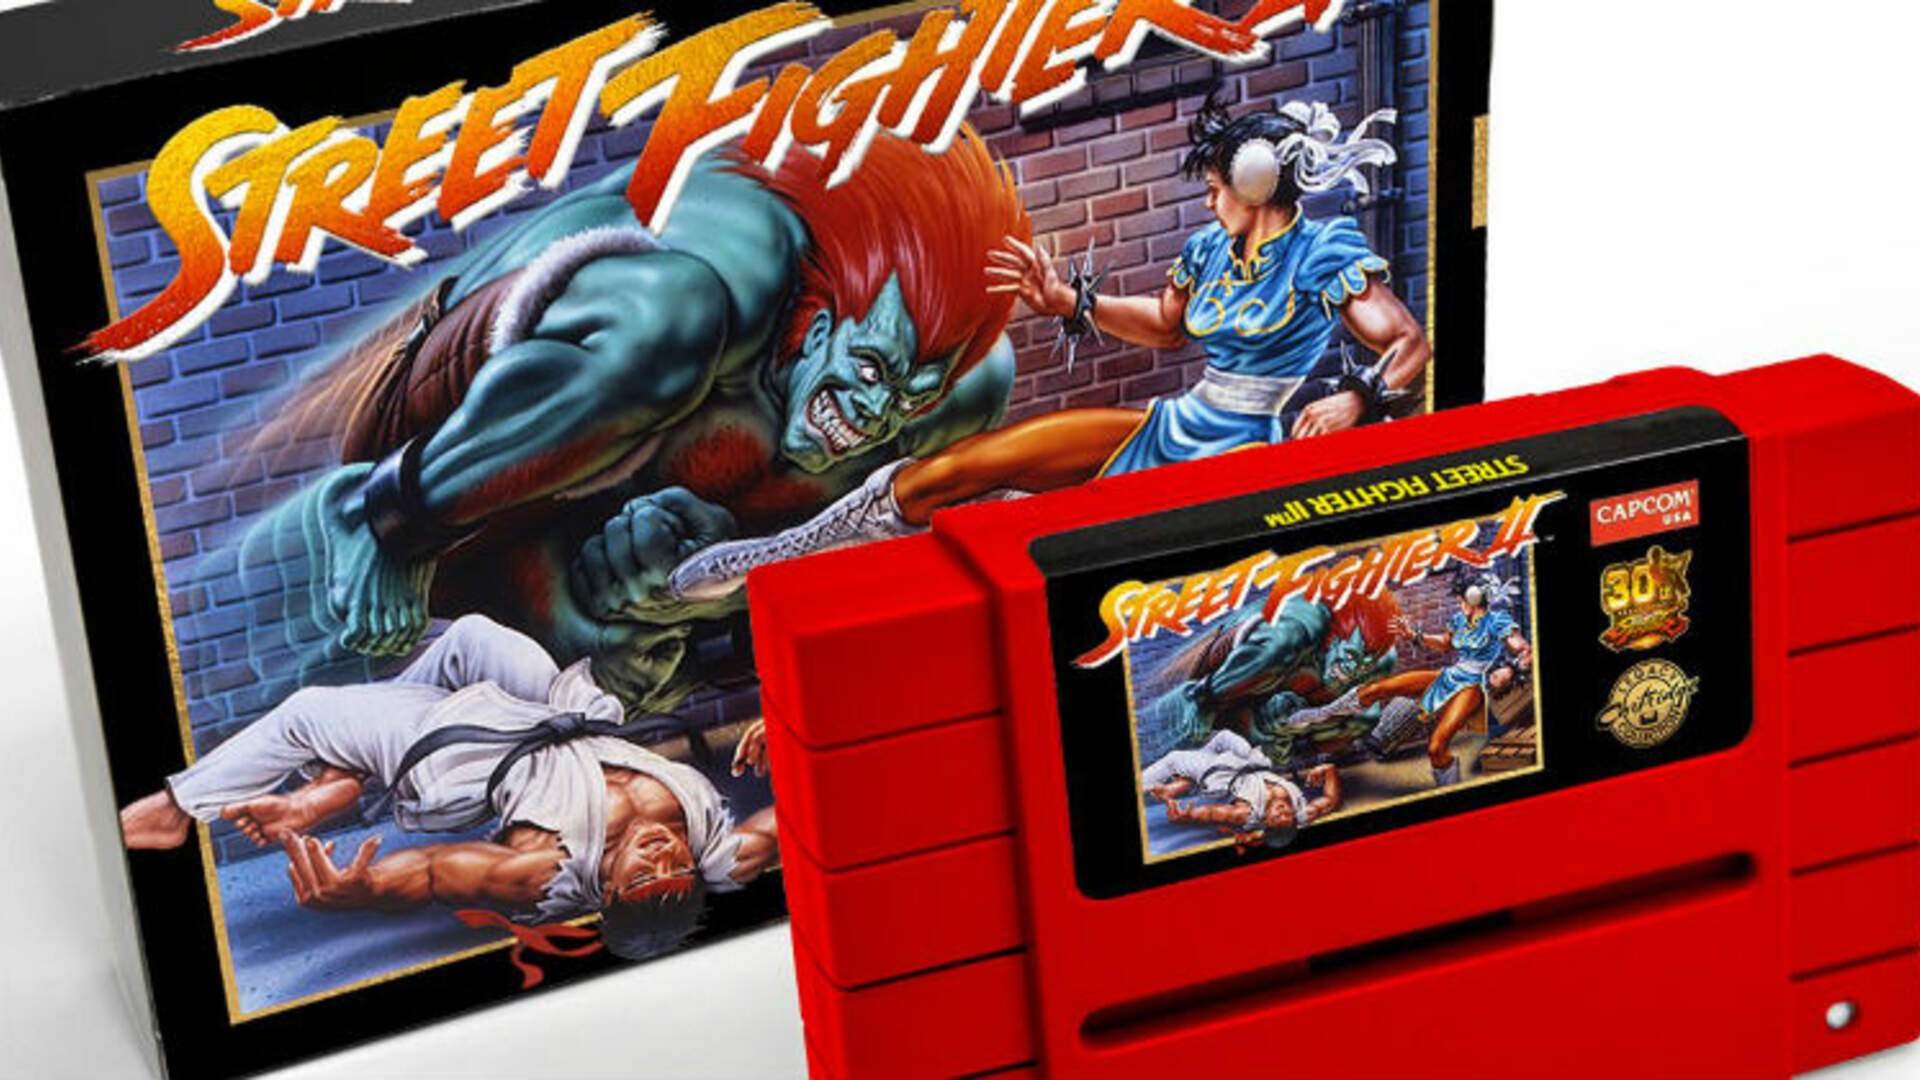 Capcom is Re-Releasing Street Fighter 2 on the Original SNES